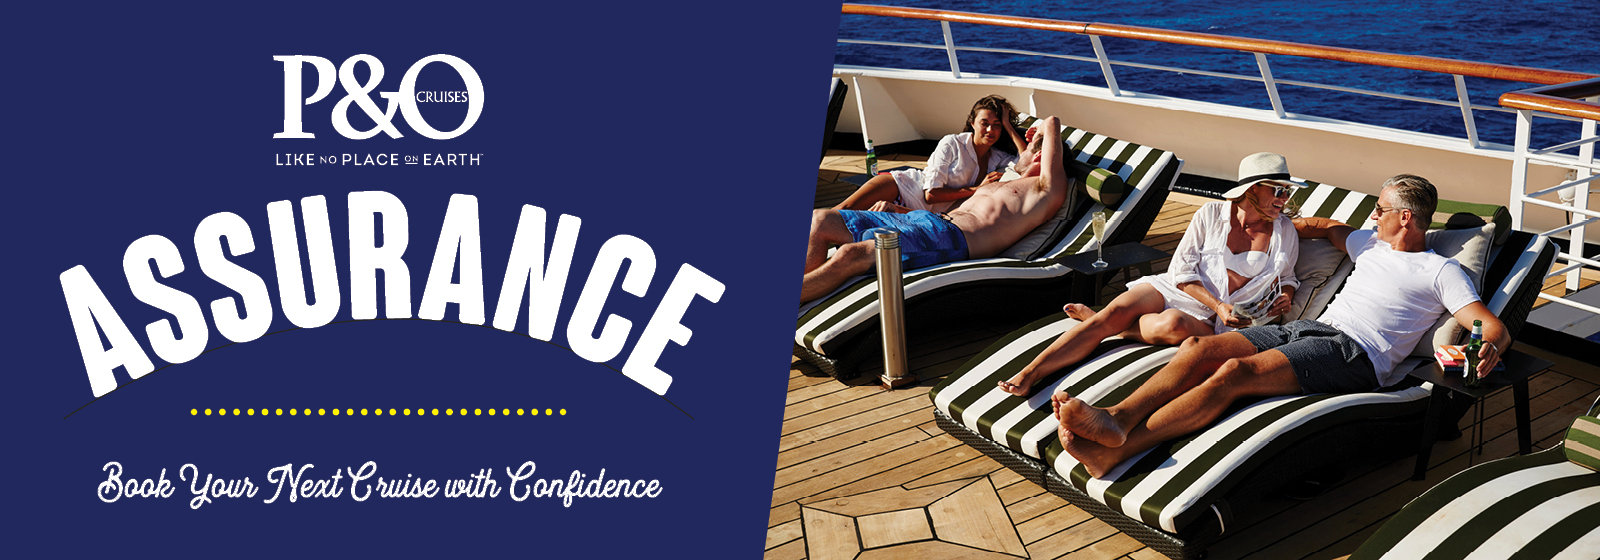 P&O - New Assurance Policy